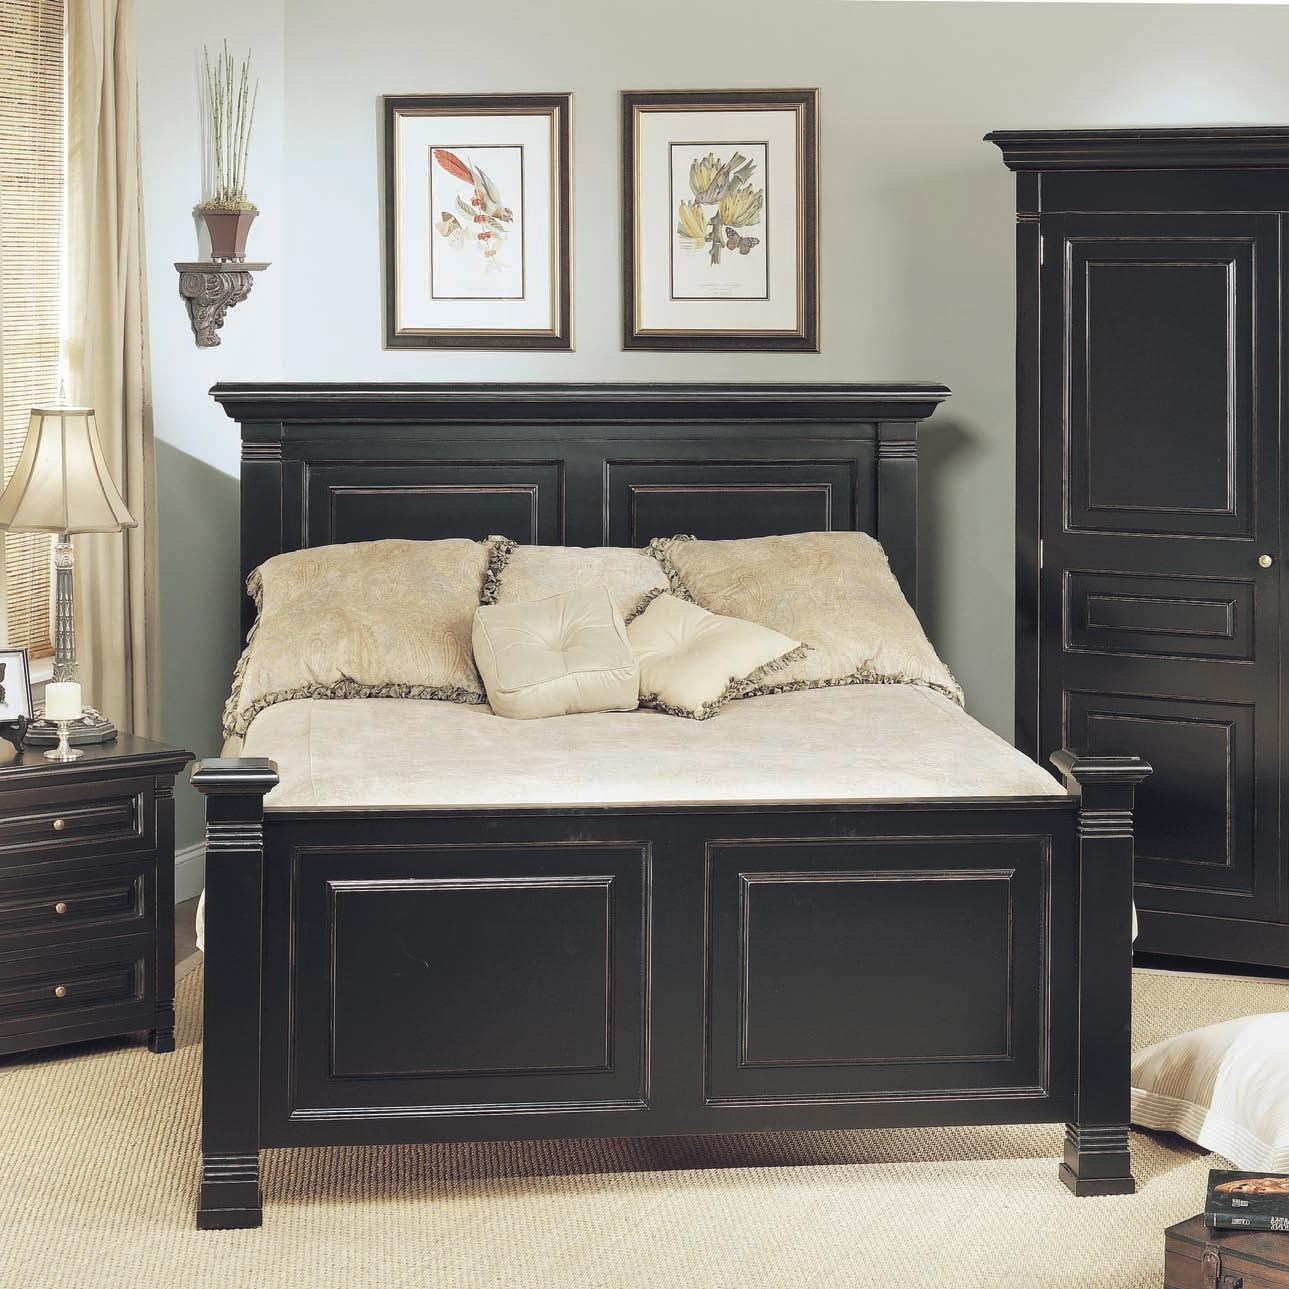 old biscayne designs custom design solid wood beds lisette wood, Headboard designs